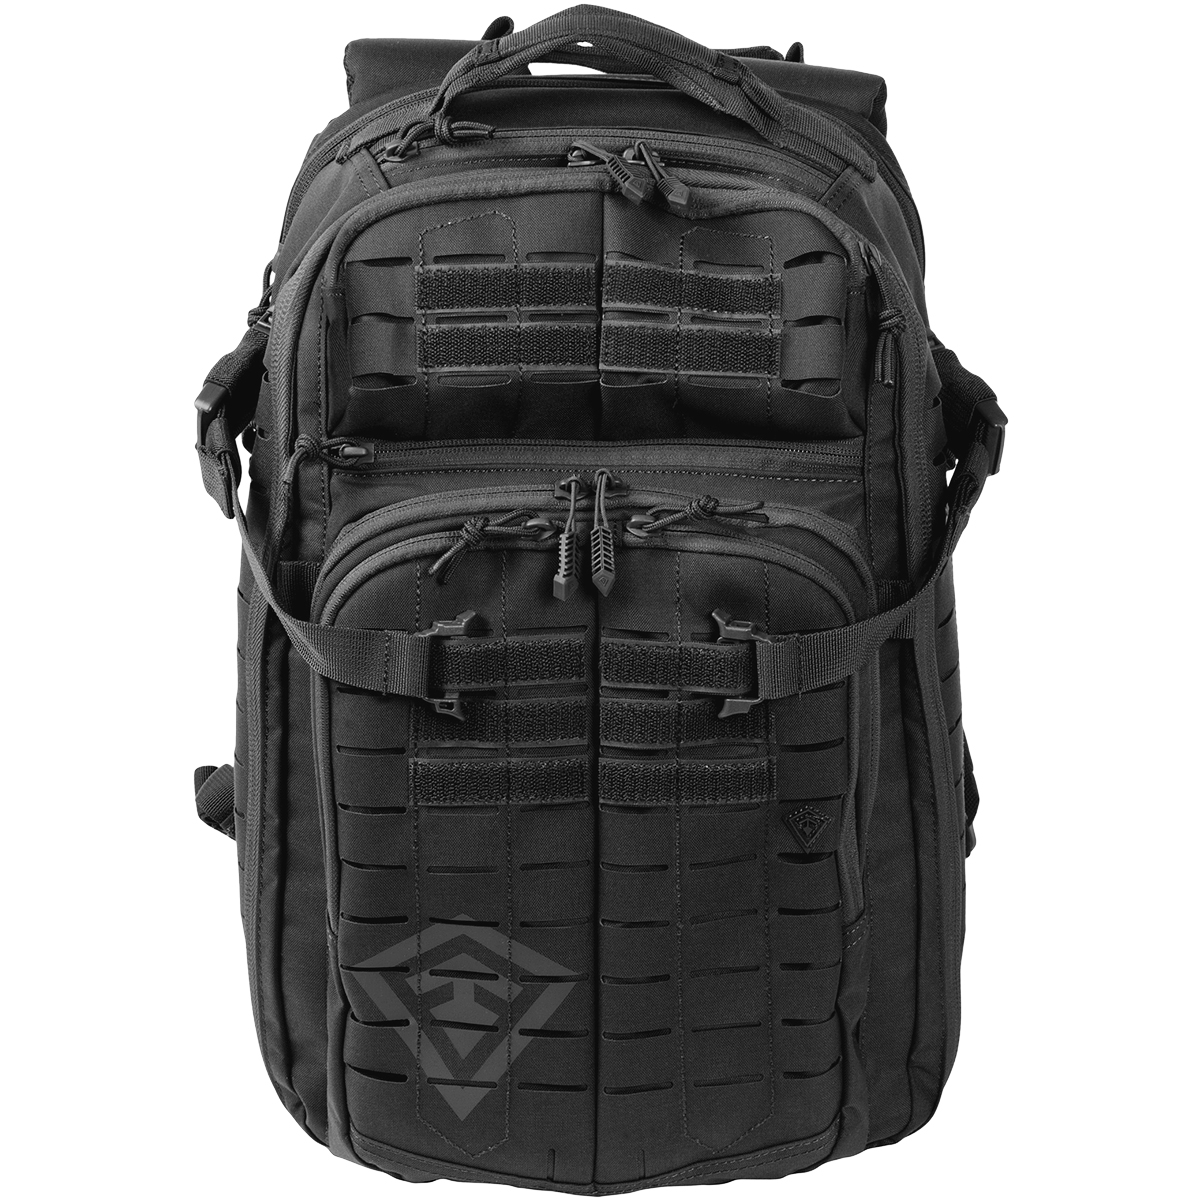 First Tactical Tactix 3-Day Backpack Security Police Nylon MOLLE Rucksack Black